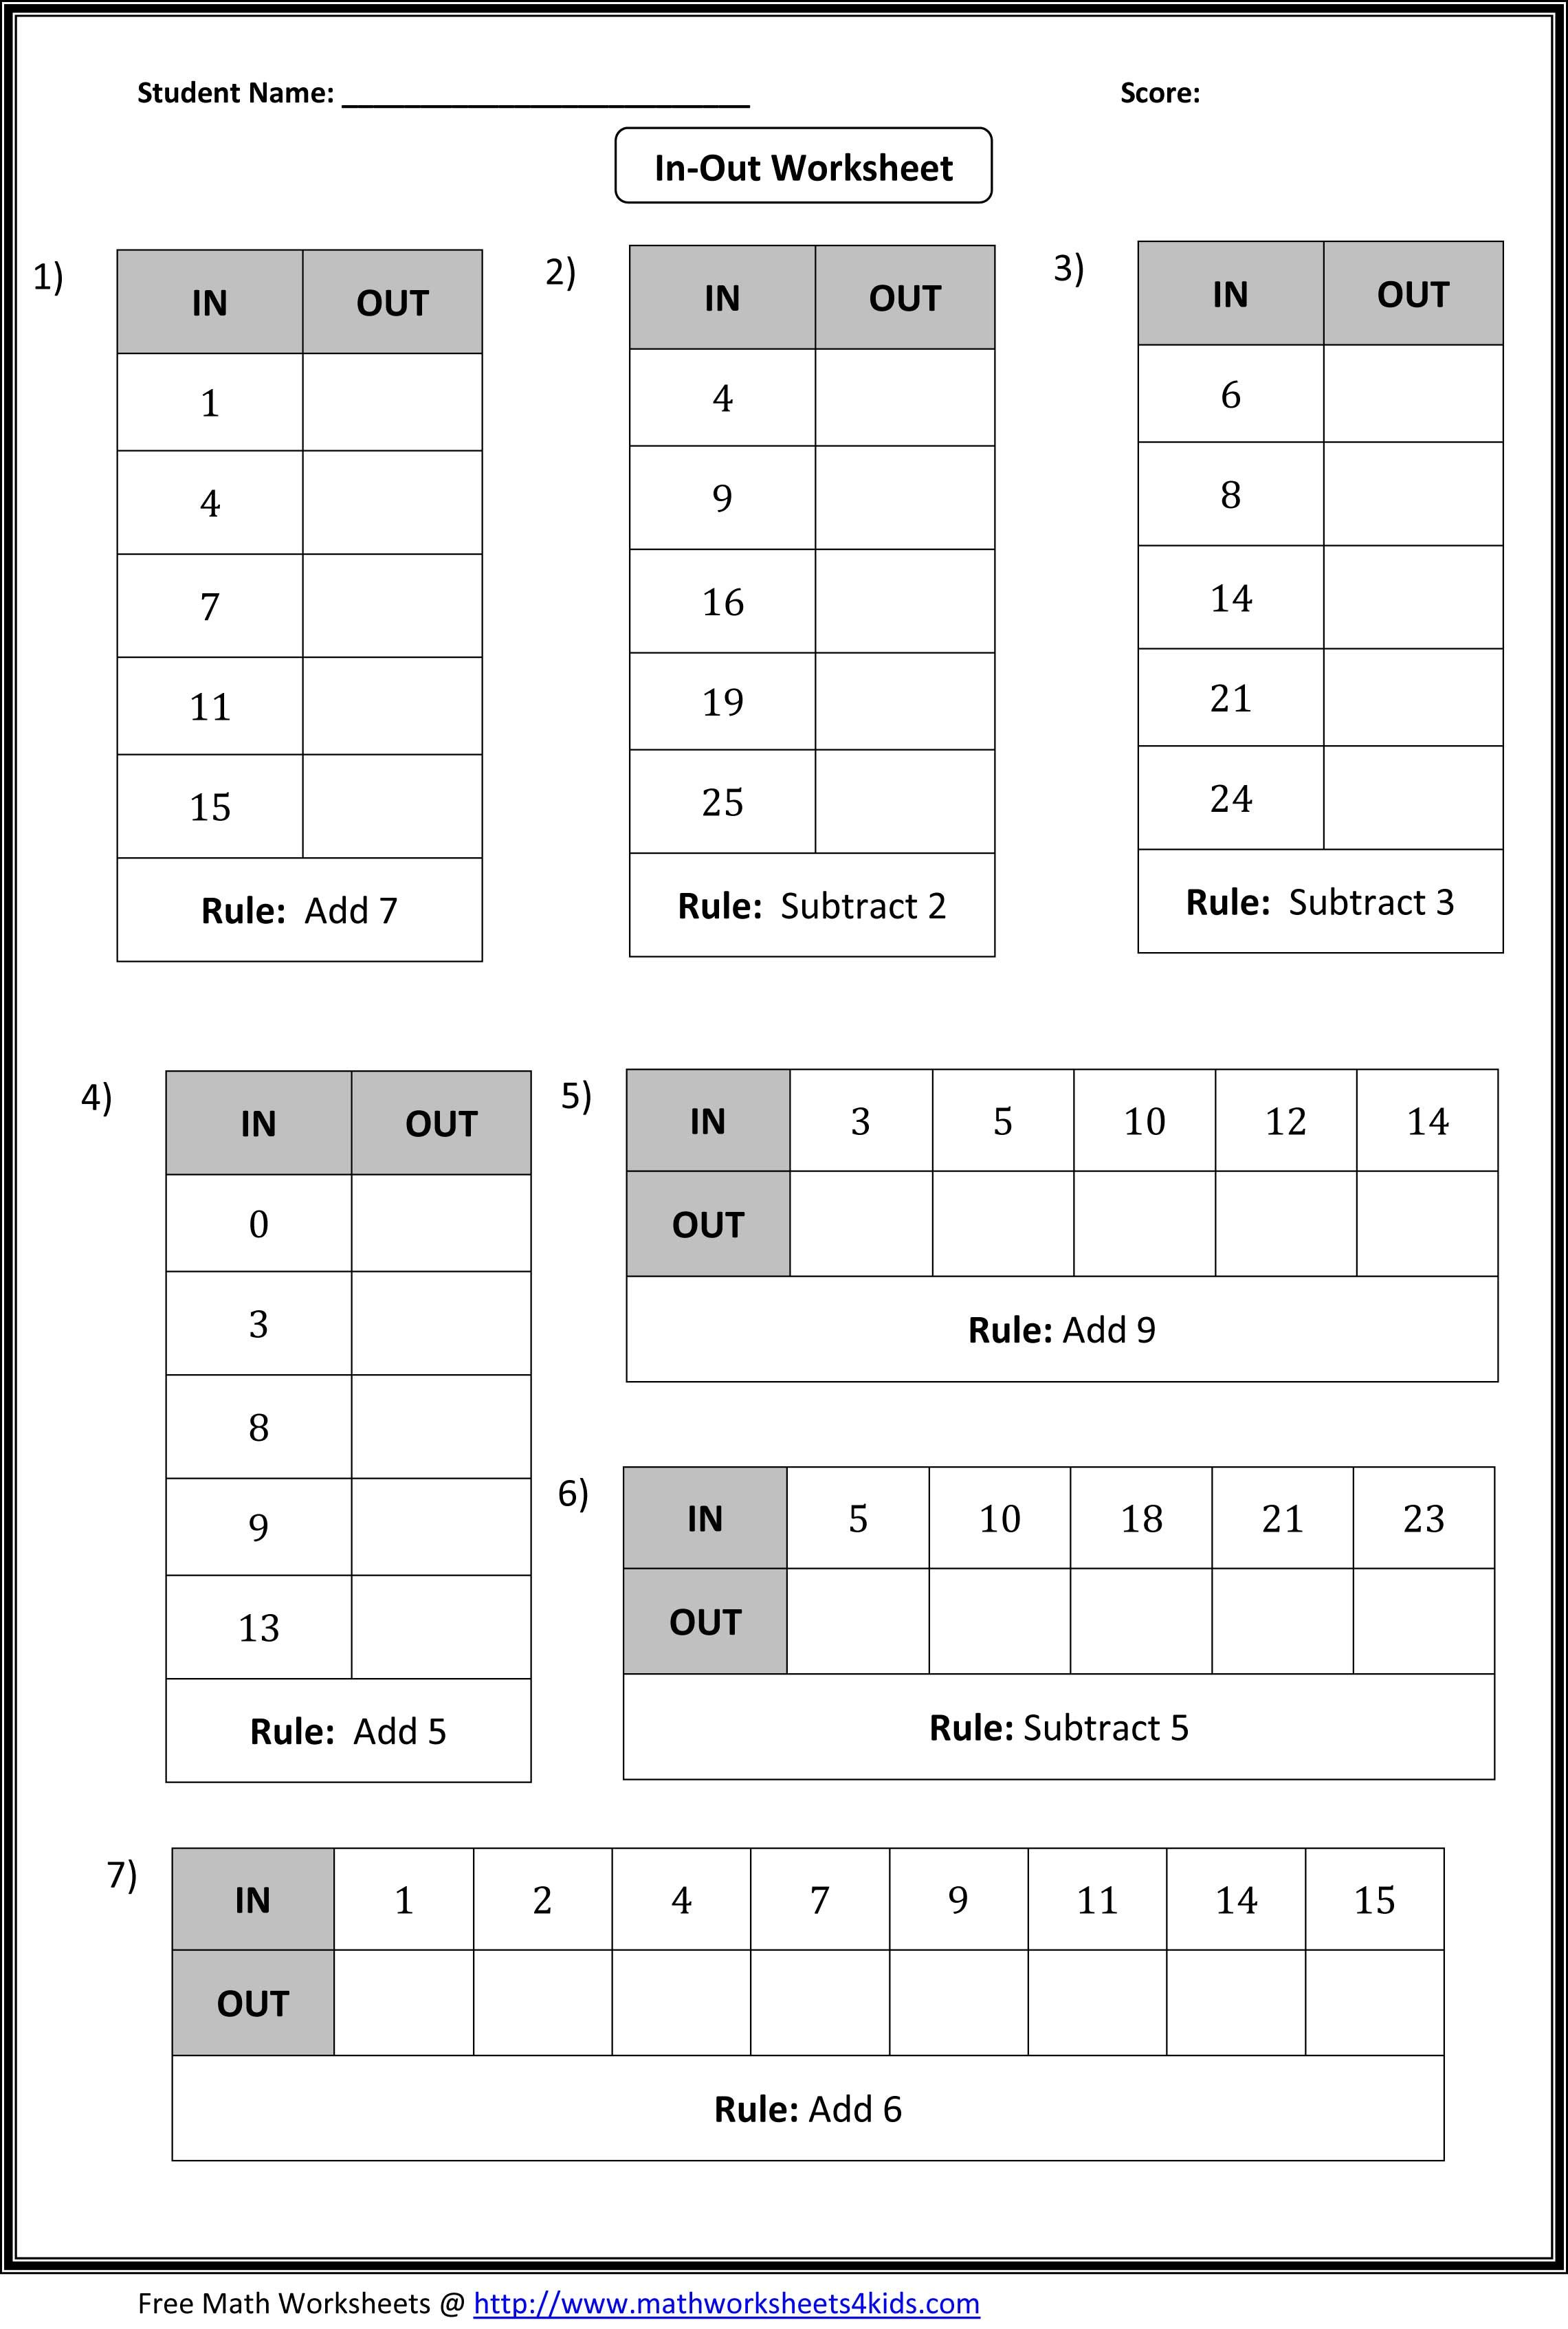 In Out Boxes Worksheets Include Addition Subtraction Multiplication And Division Of Whole